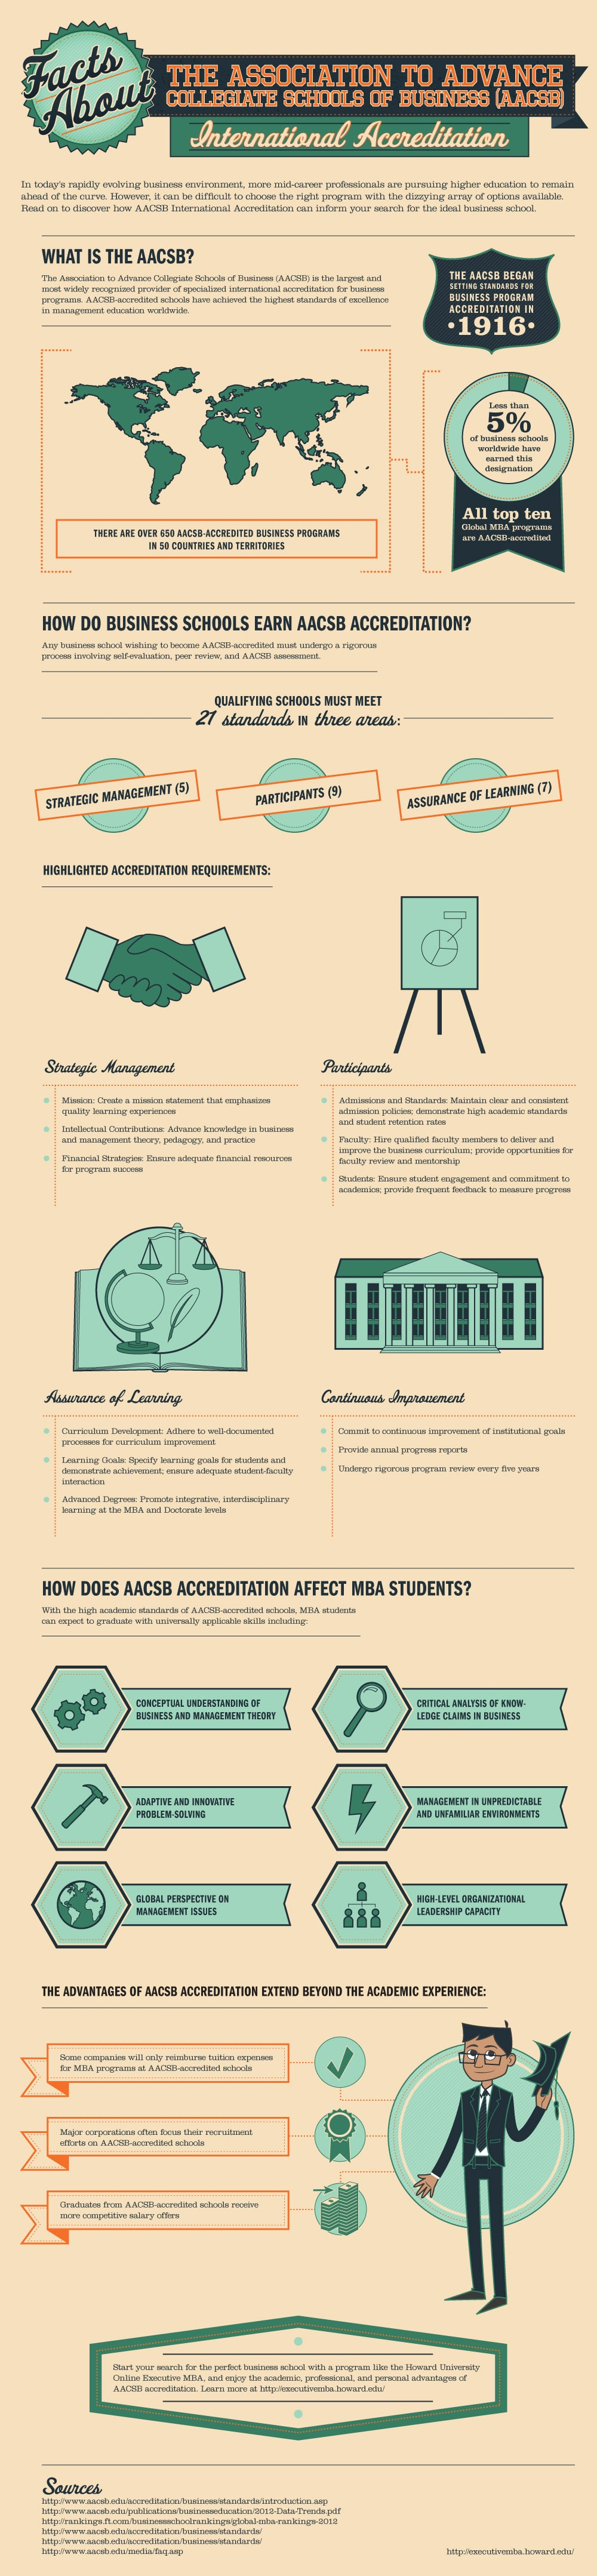 AACSB Accreditation: How It Affects College Education [Infographic]